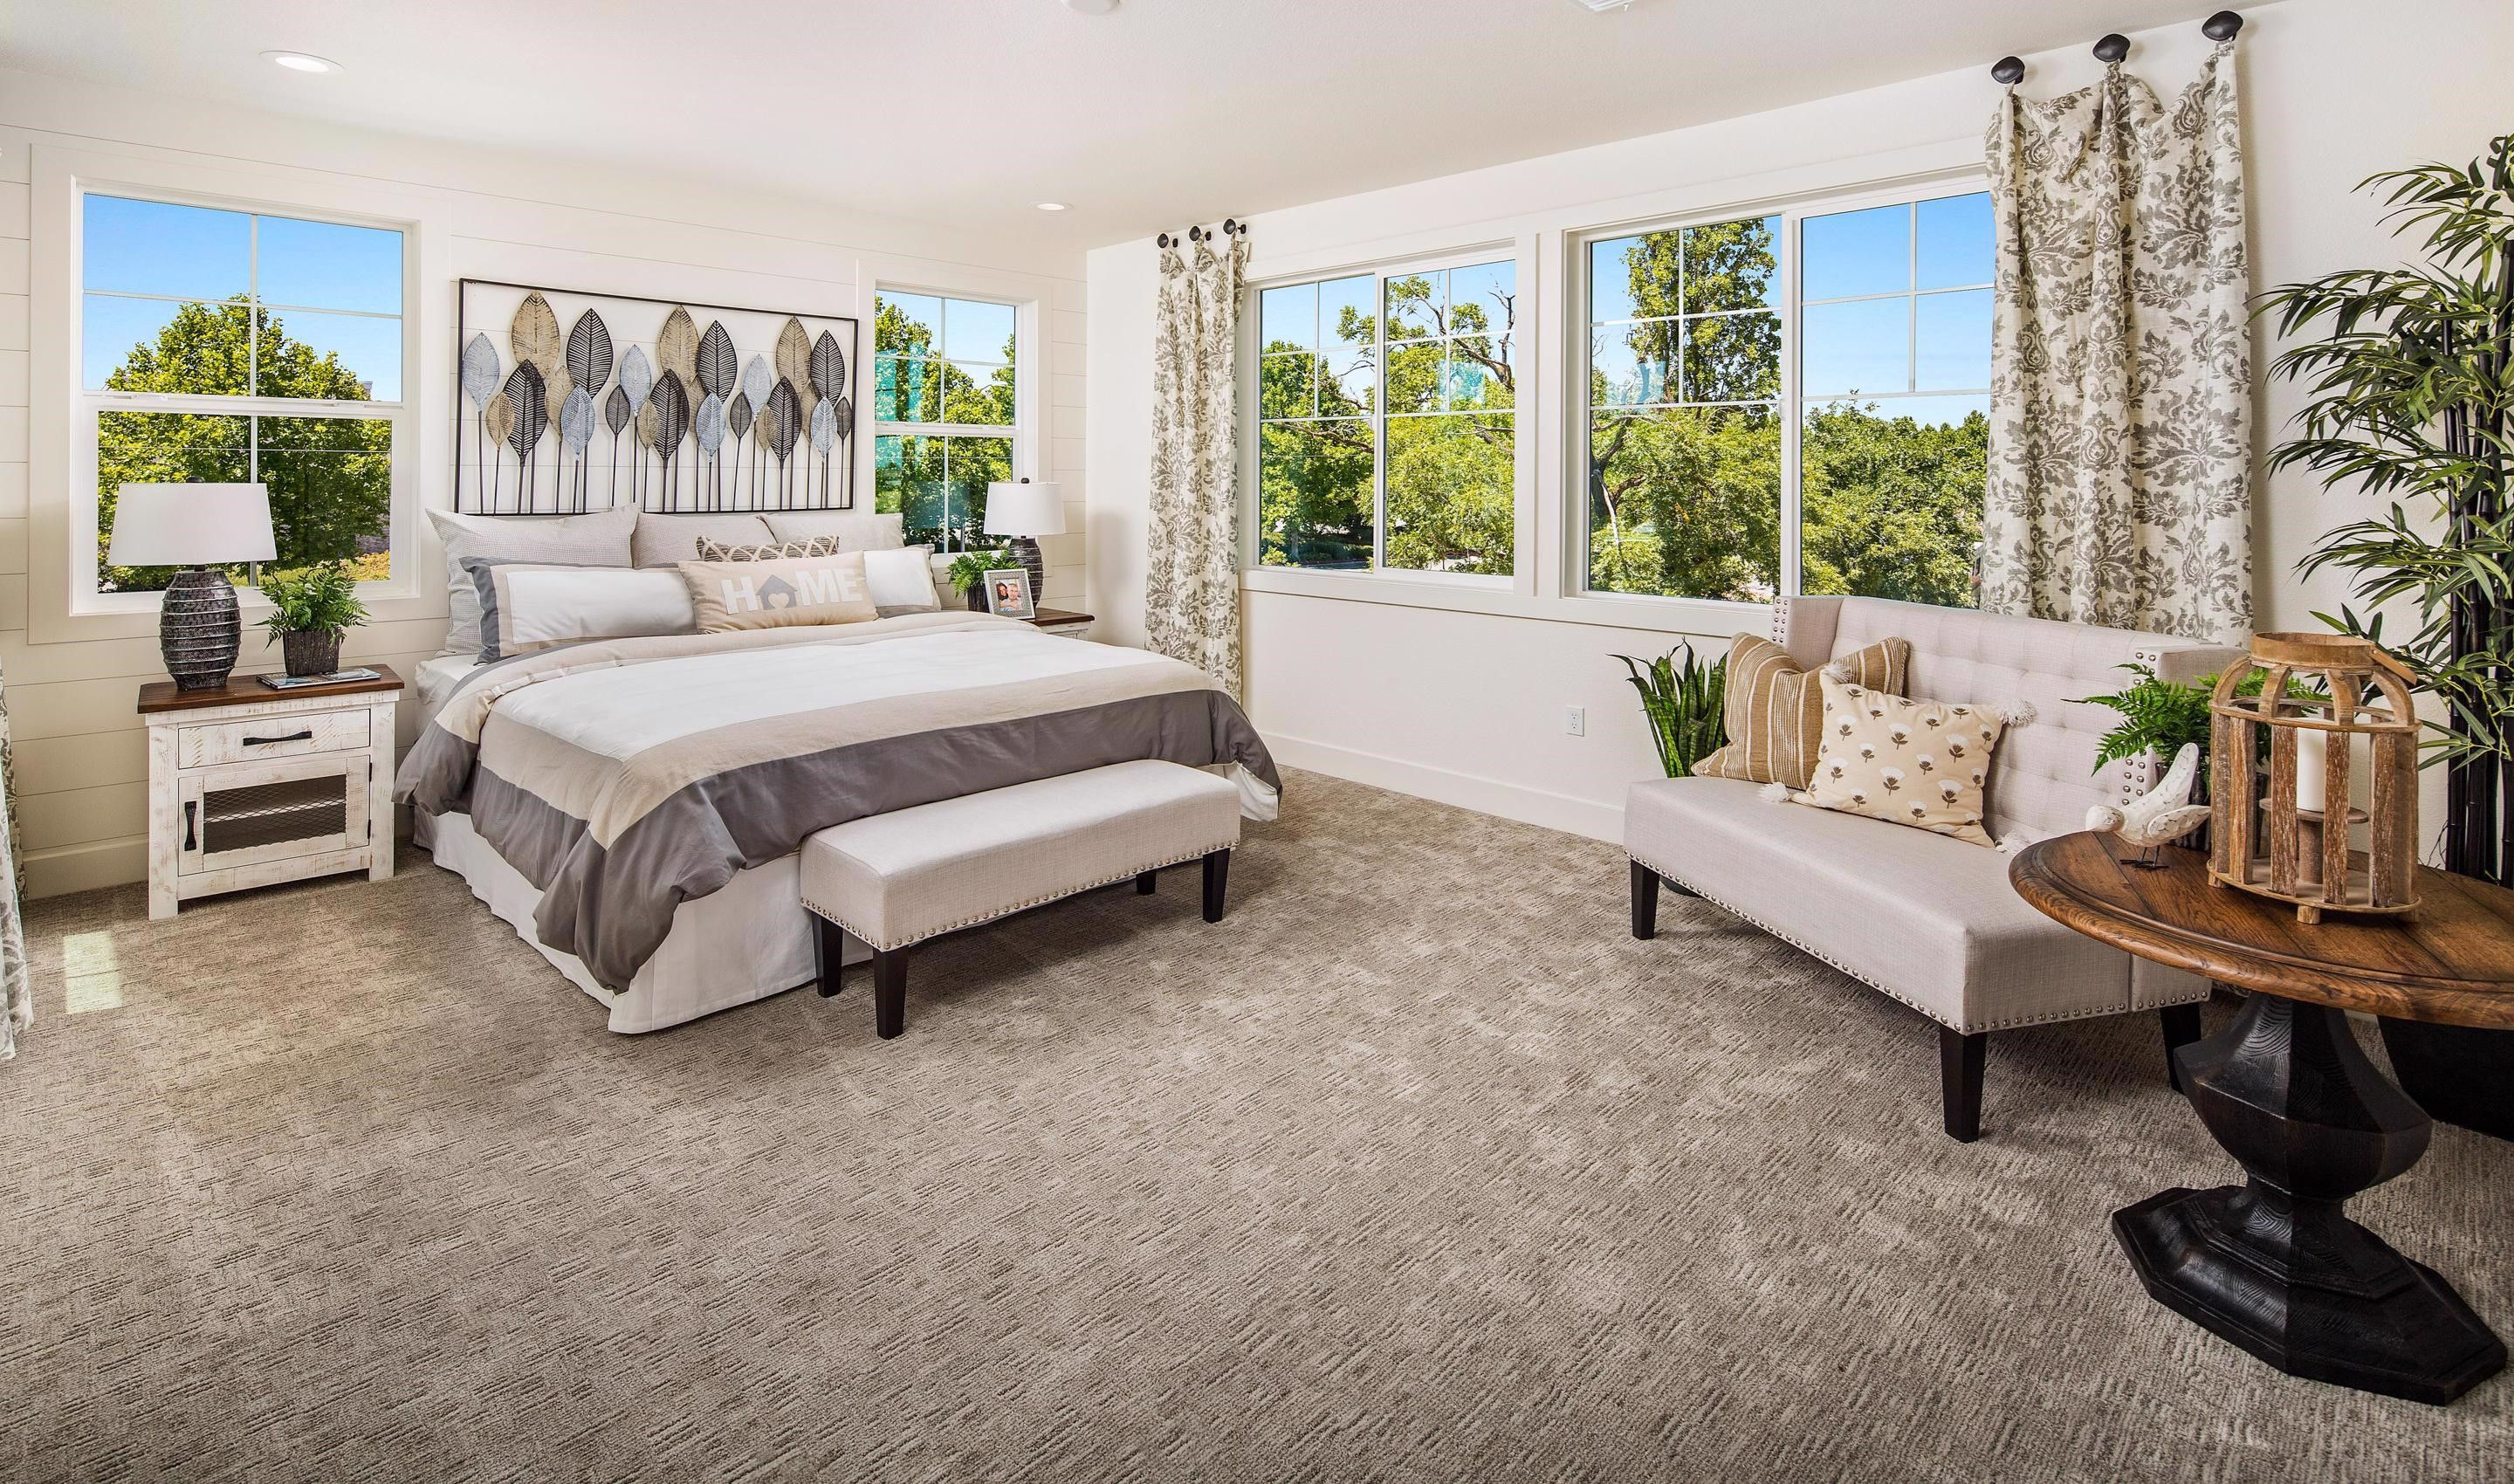 Bedroom featured in the Triumph By K. Hovnanian® Homes in Oakland-Alameda, CA